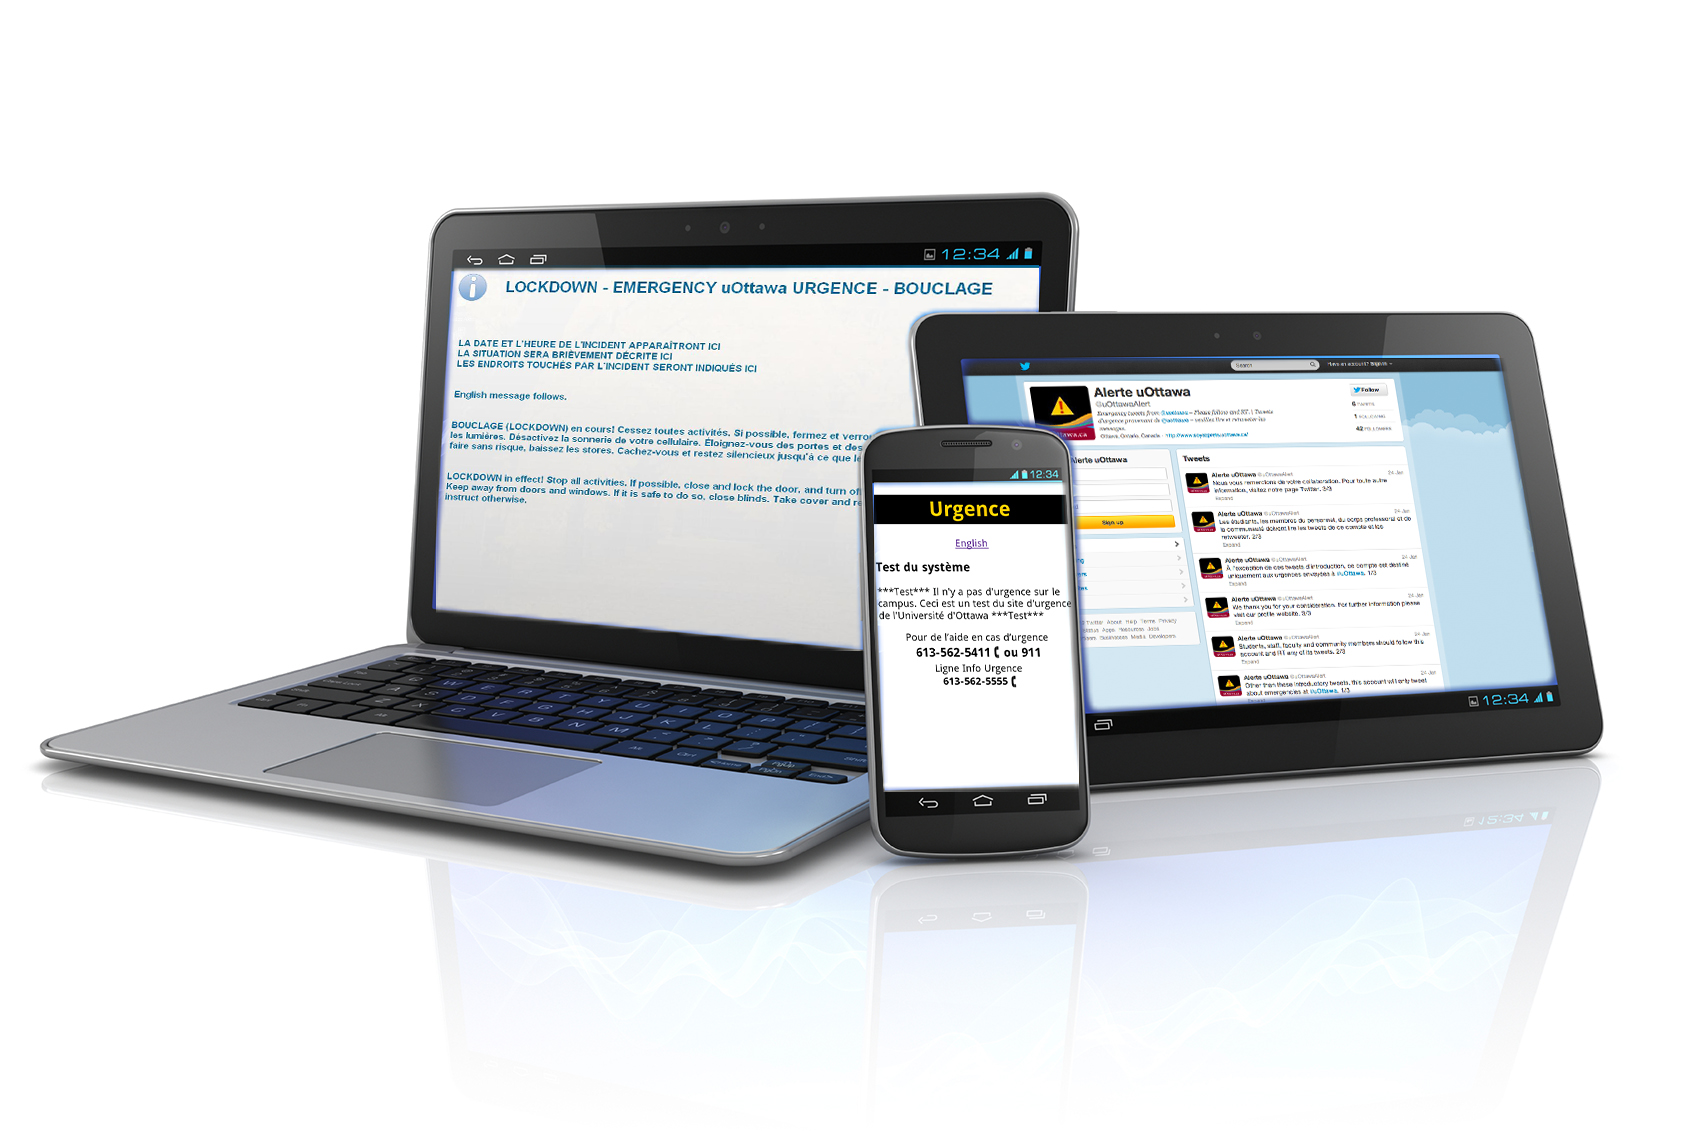 7.	Picture of a uoAlert message on various  mobile devices including a tablet, laptop and cellphone